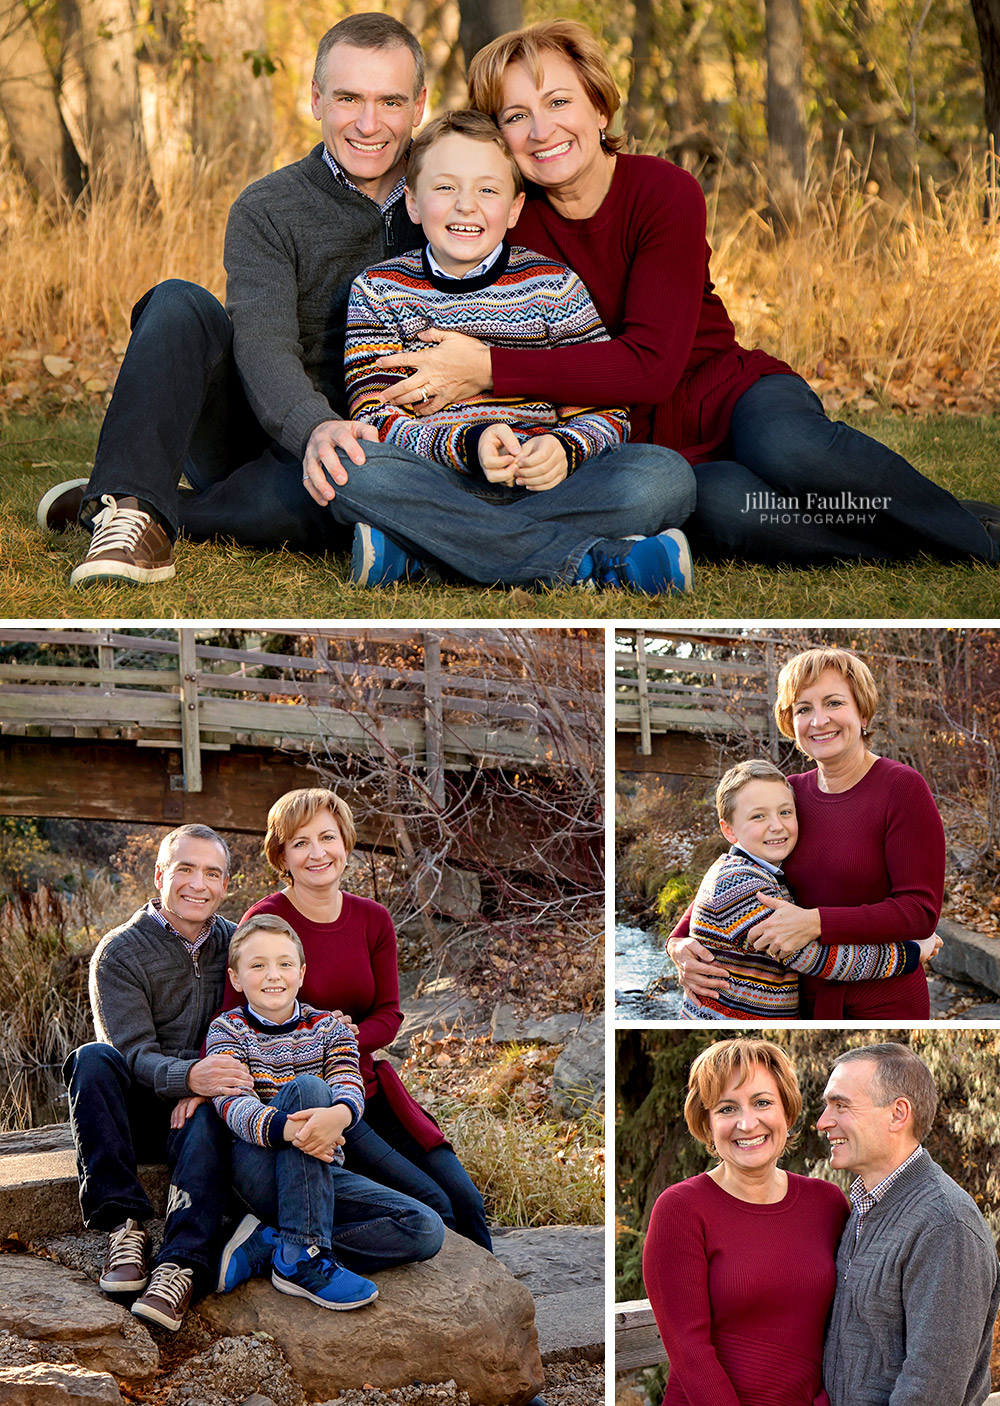 Jillian Faulkner is a child and family photographer located in Calgary, Alberta offering portrait photography sessions in studio and on location.